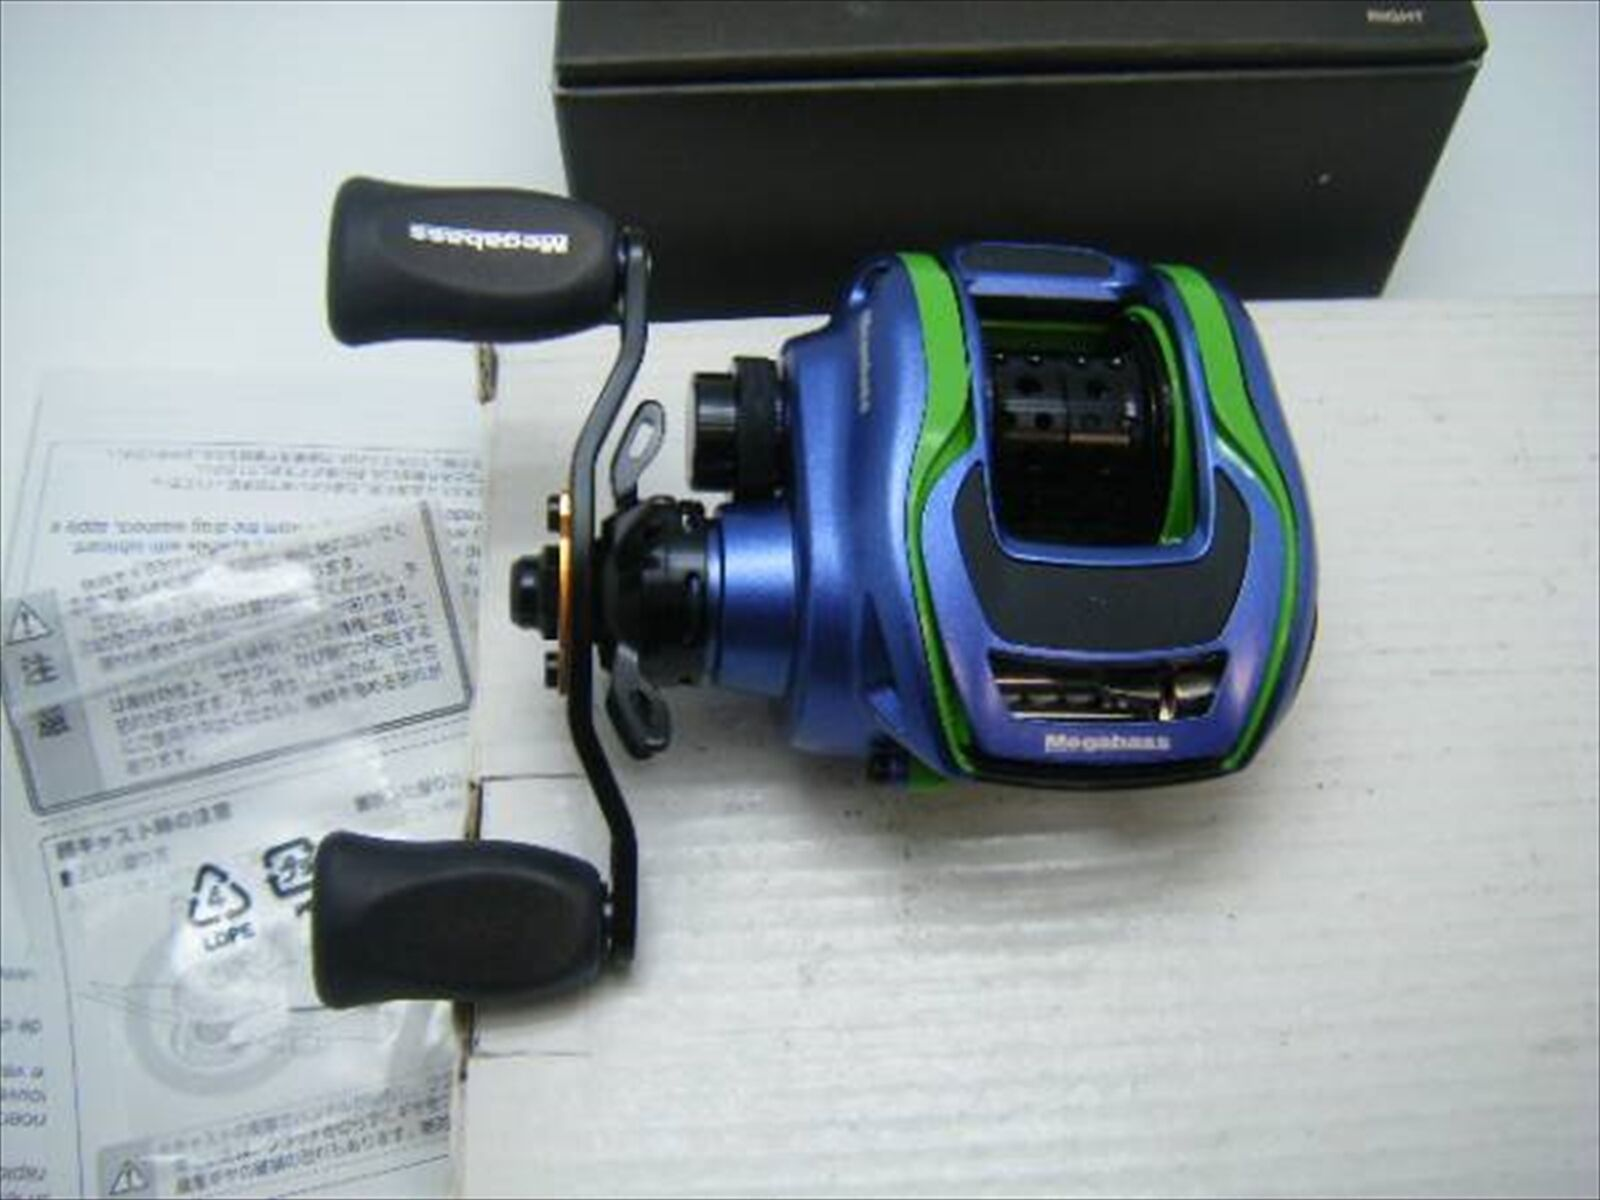 New Megabass FX68R VIOLA Right handle Reel Bait Casting Reel handle LIMITED COLOR F/S EMS JP 057734